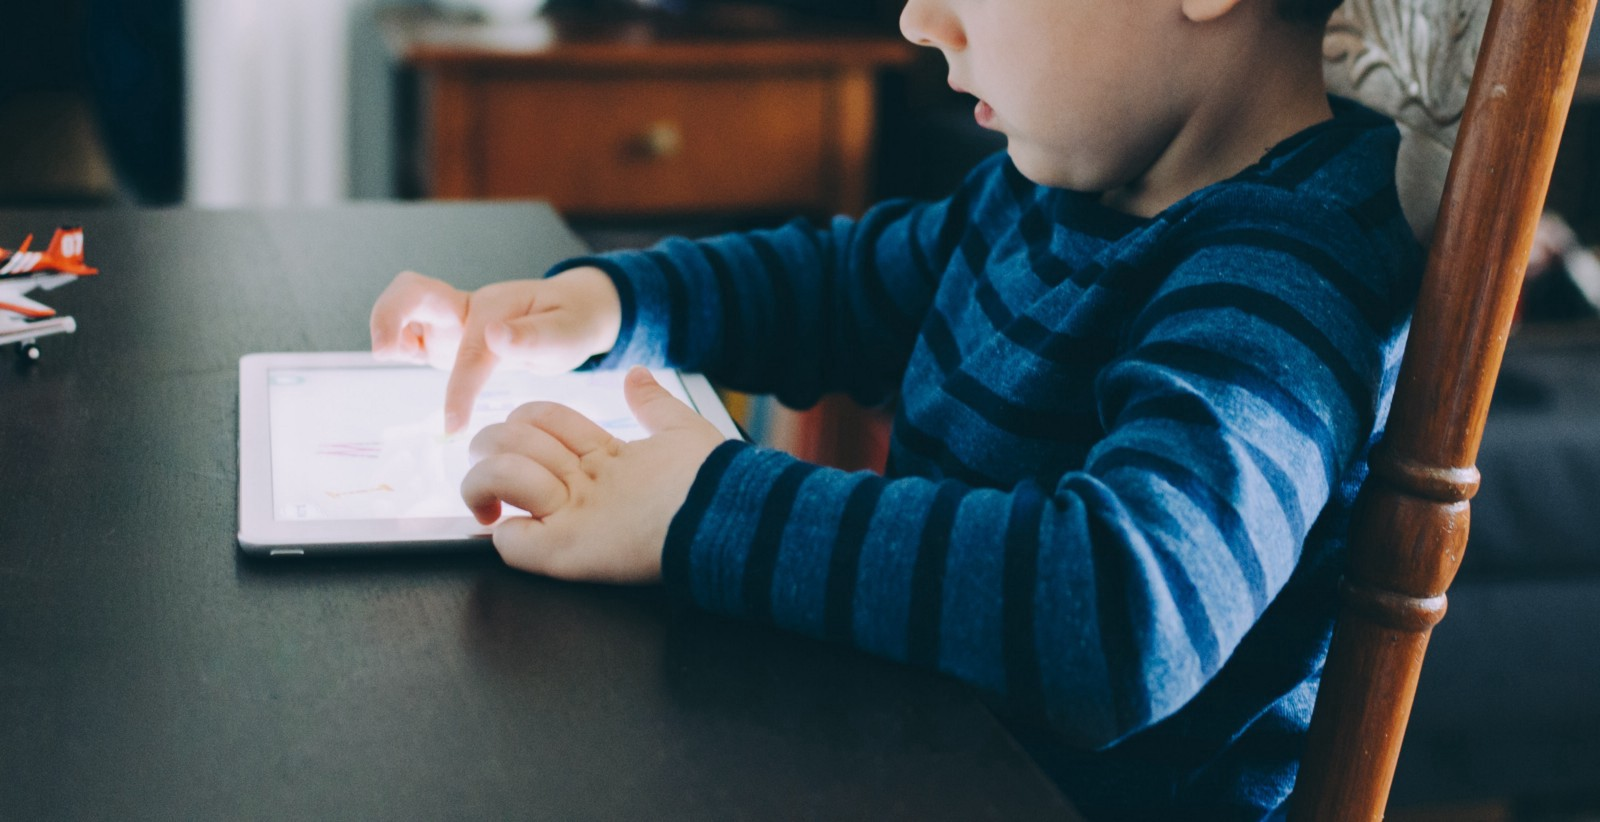 Study Most Kids Still Arent Screened >> Six Screen Time Studies That Changed My Parenting Approach